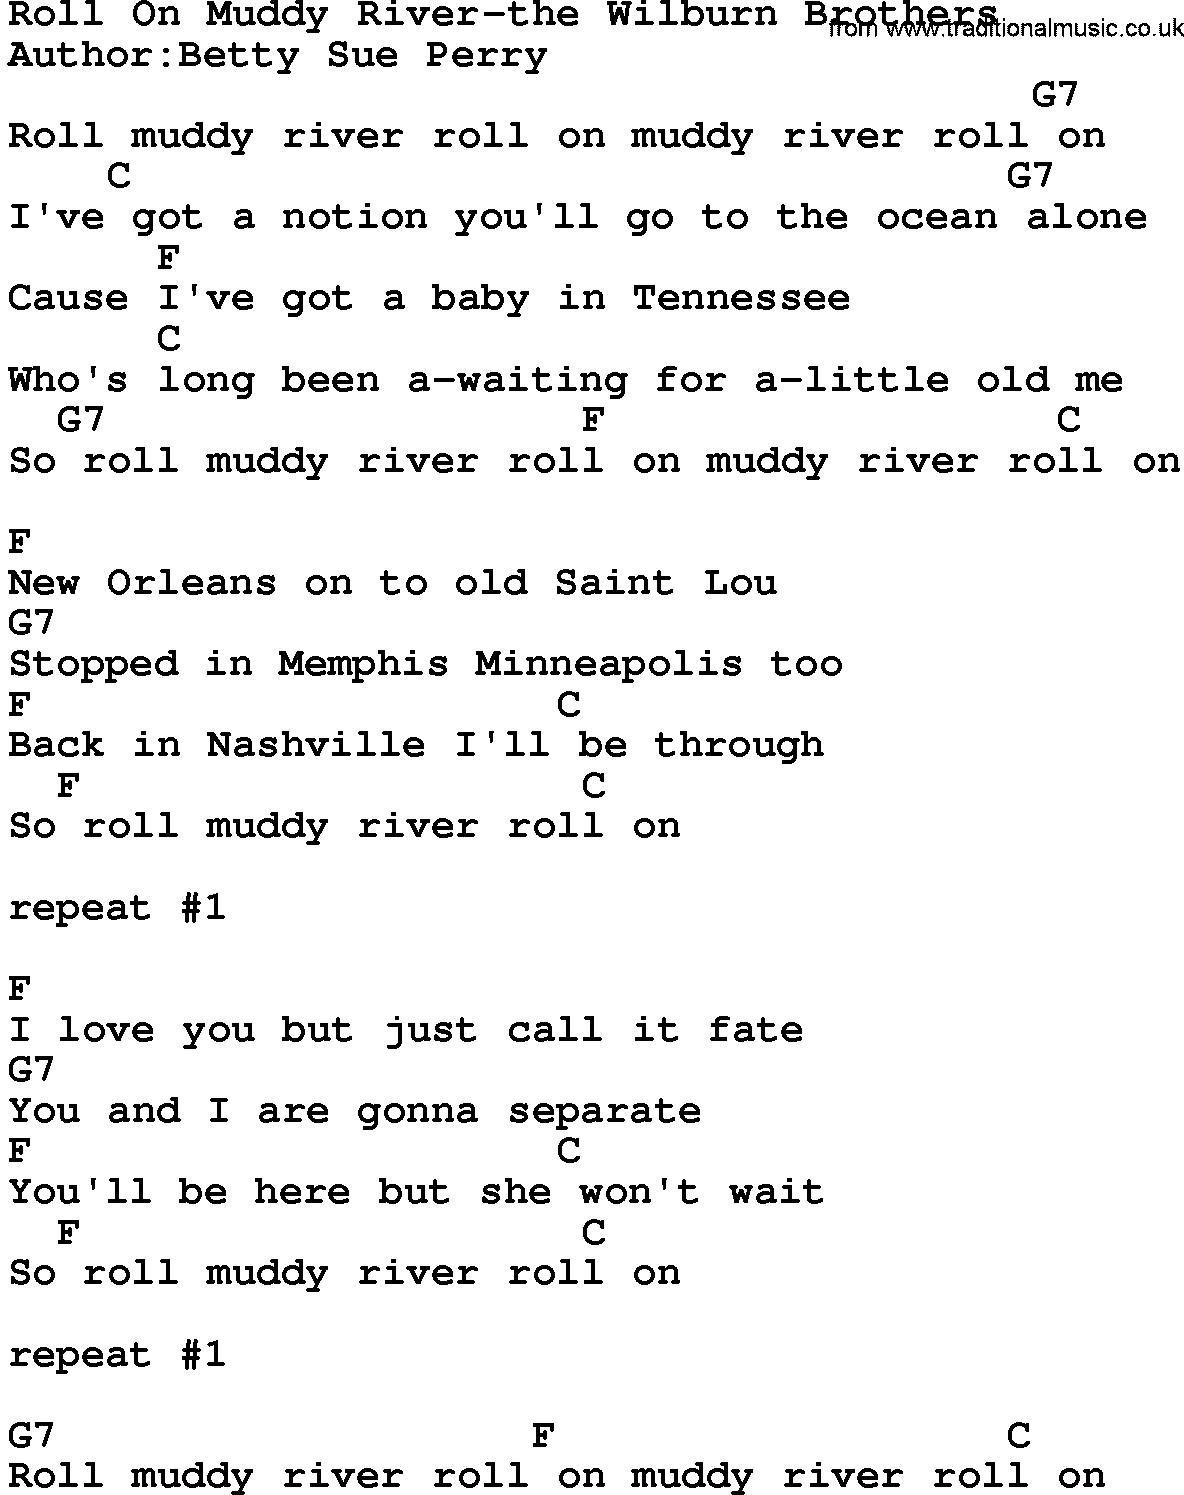 Kingston Trio - Rolling River Lyrics | MetroLyrics